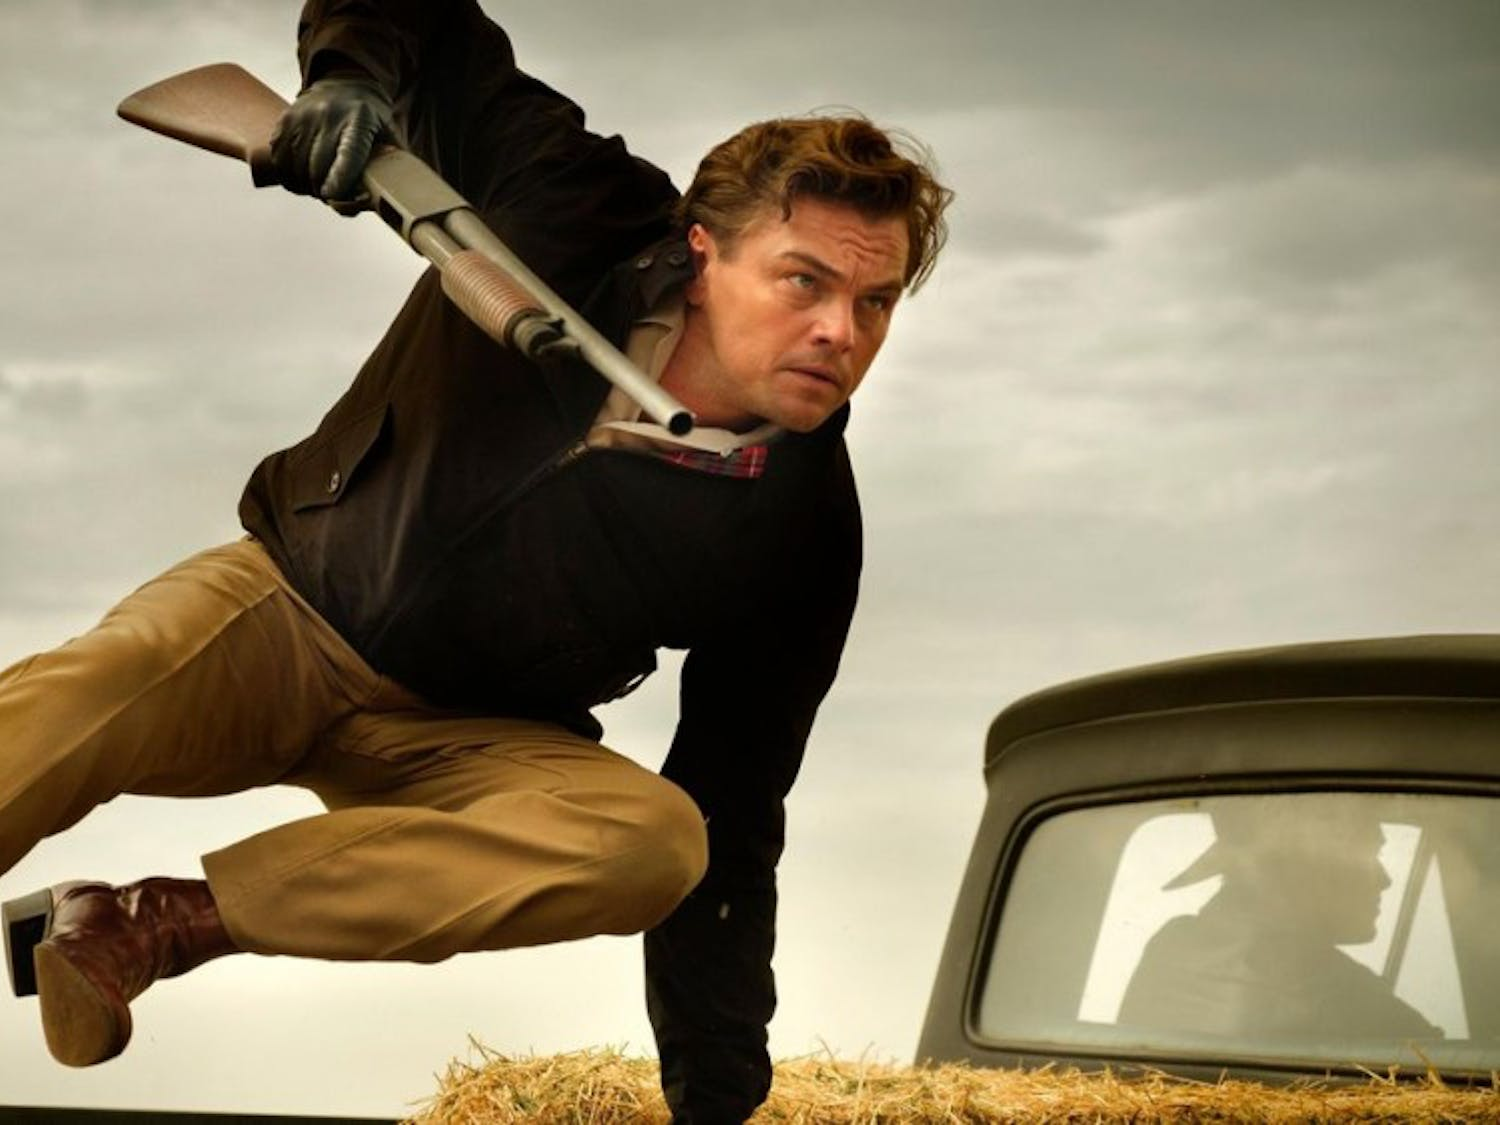 Film_Review___Once_Upon_a_Time_in_Hollywood_09982.0.jpg